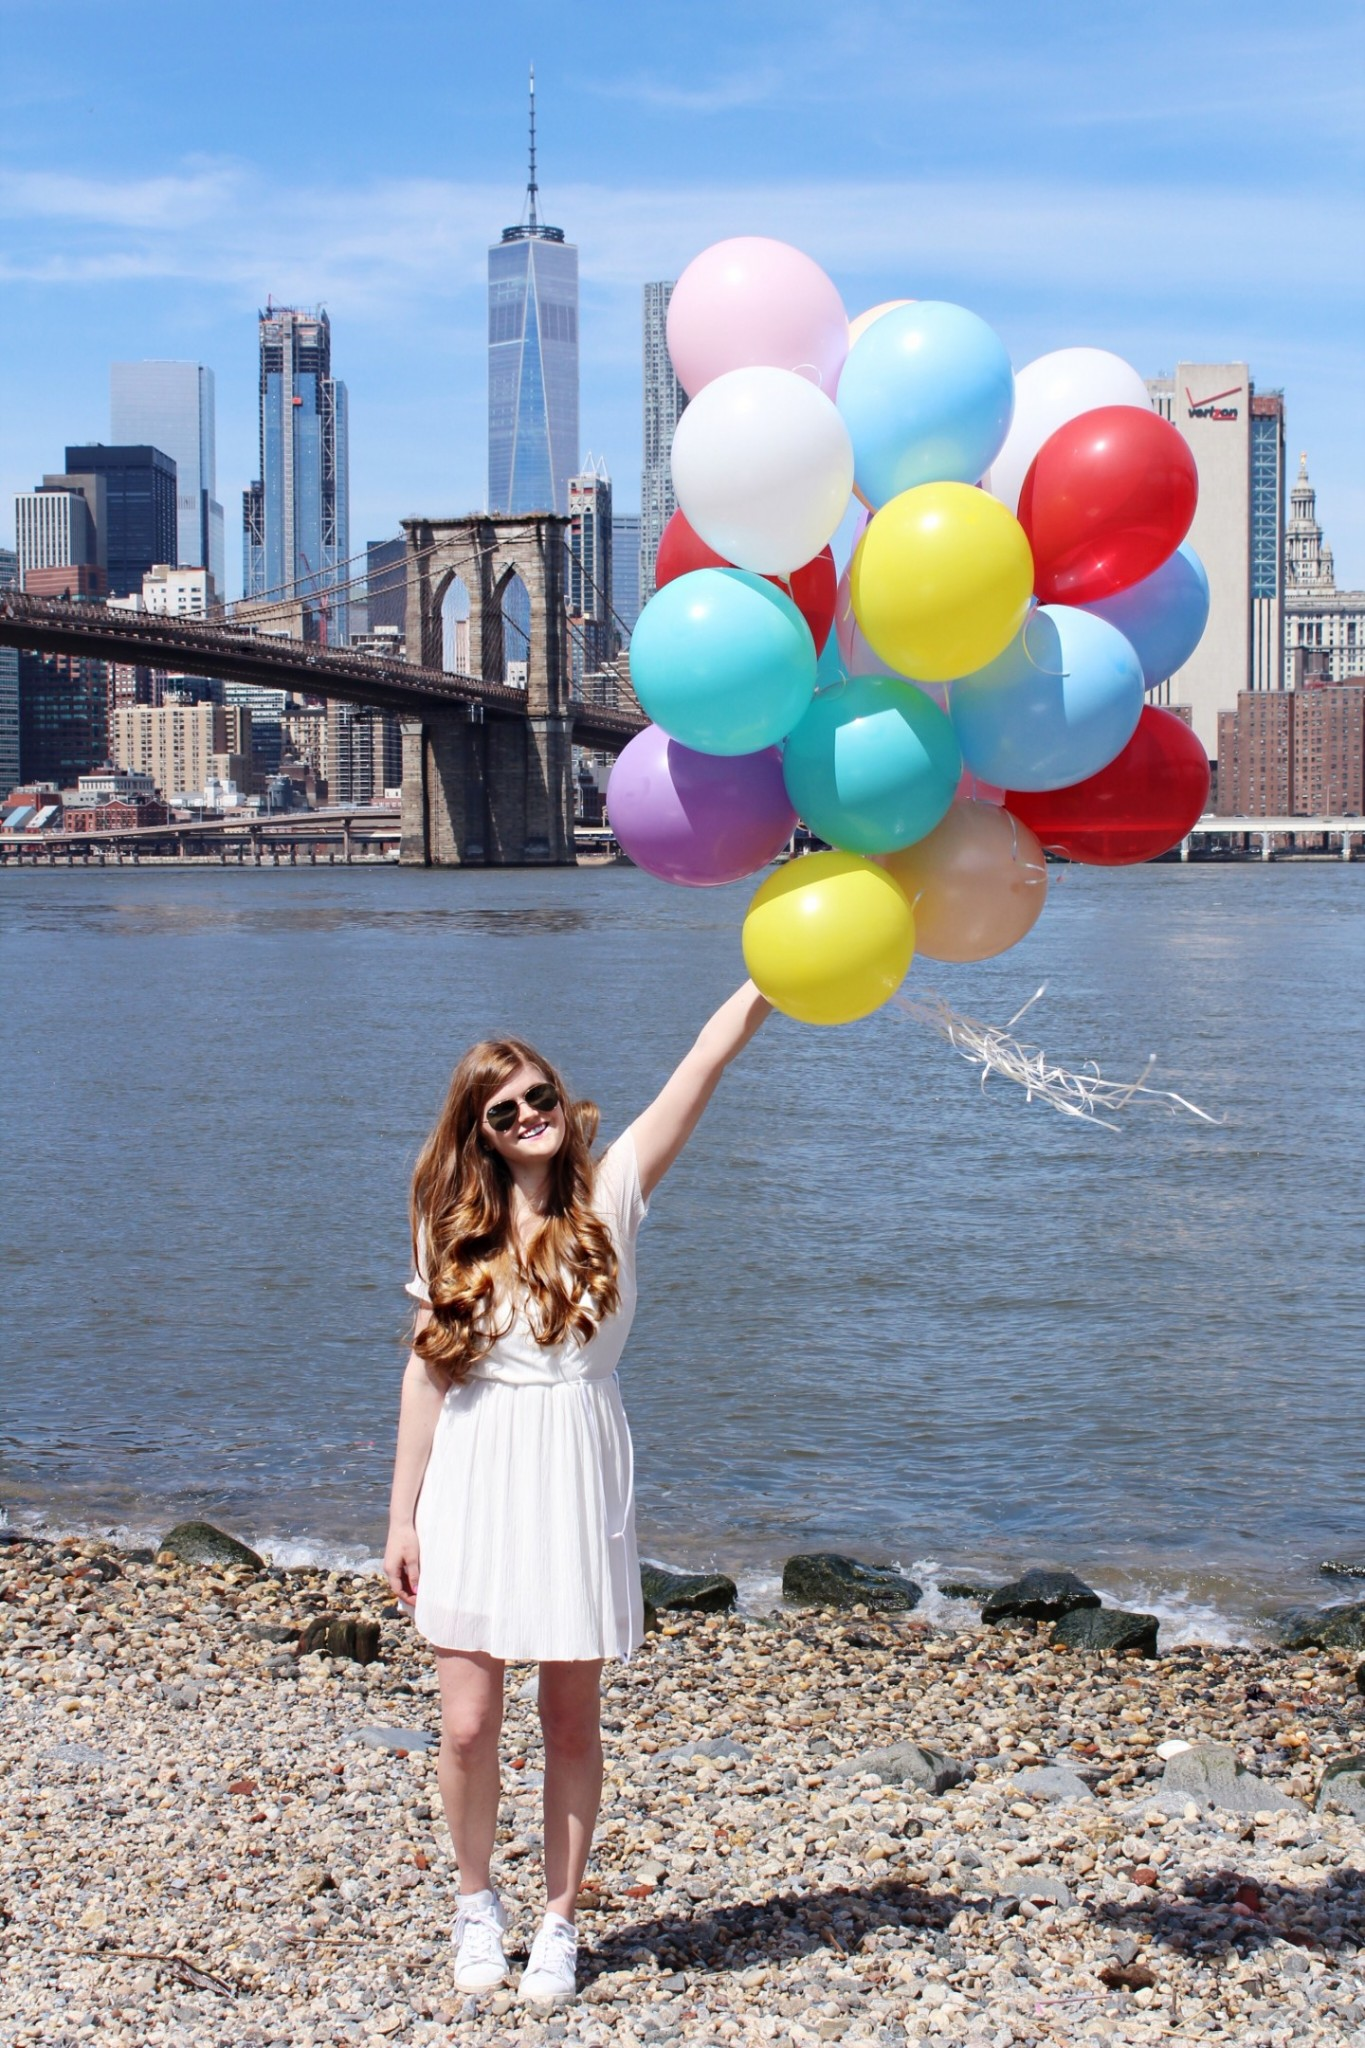 Lifestyle blogger Mollie Sheperdson shares 26 facts about herself on her 26th birthday